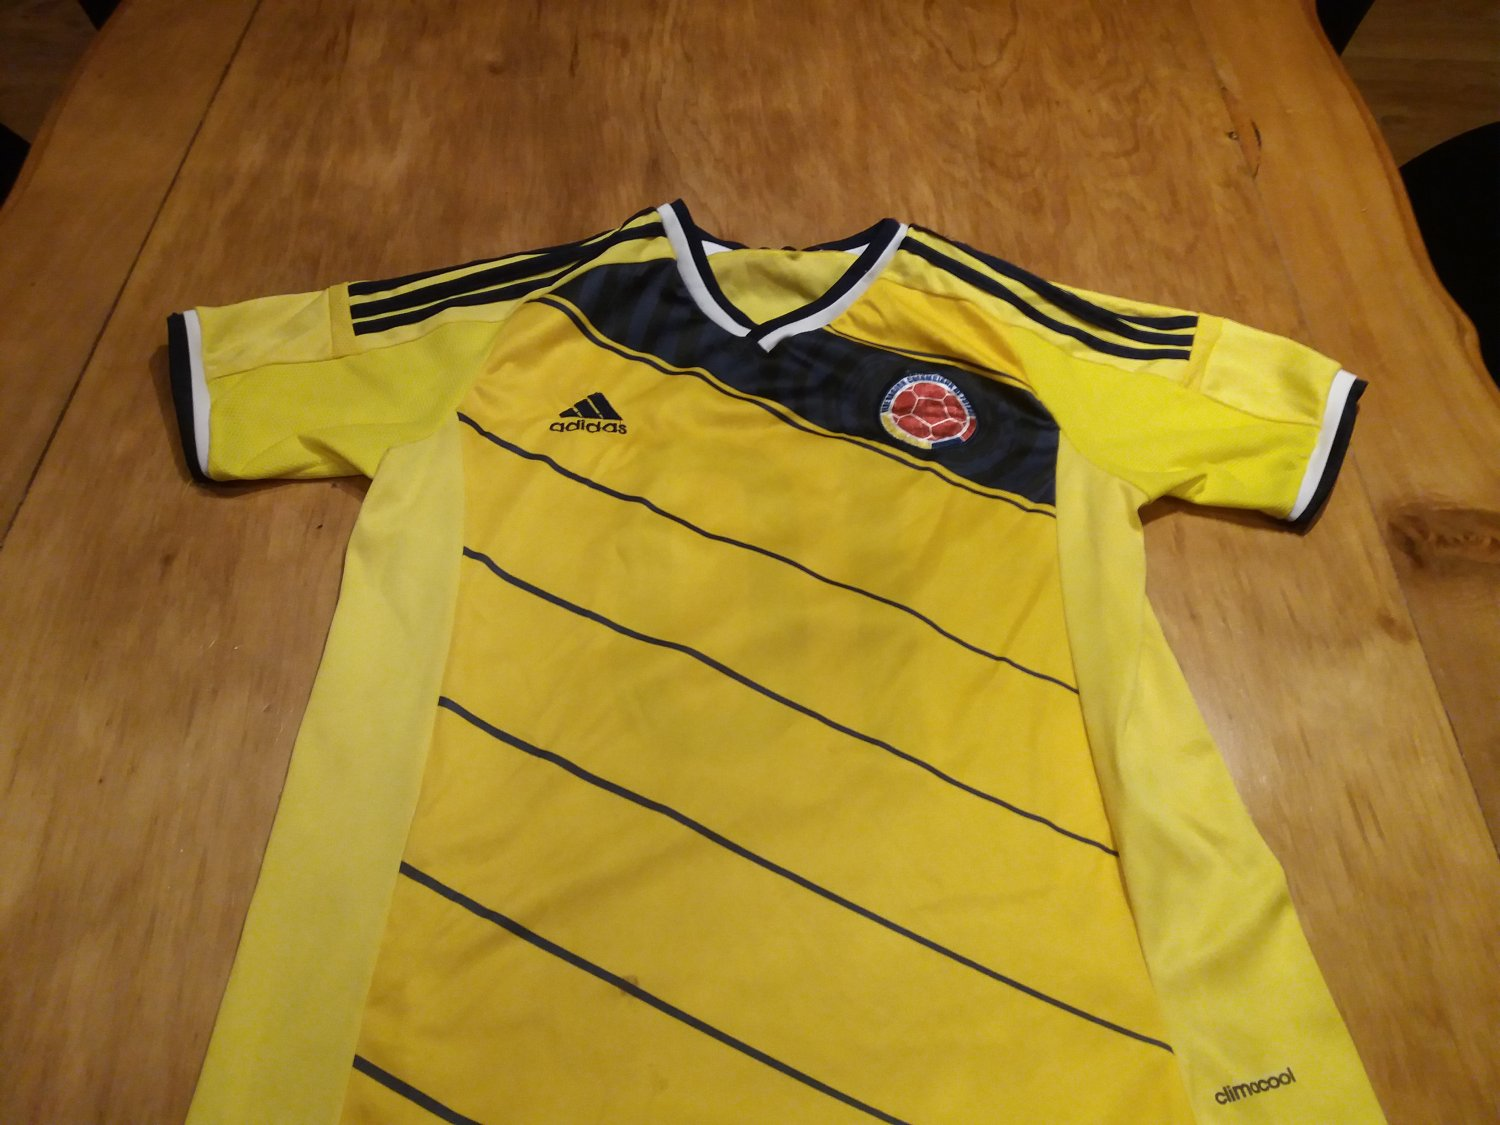 e6e1f52677f Colombia Home Maillot de foot 2014 - 2015 ...